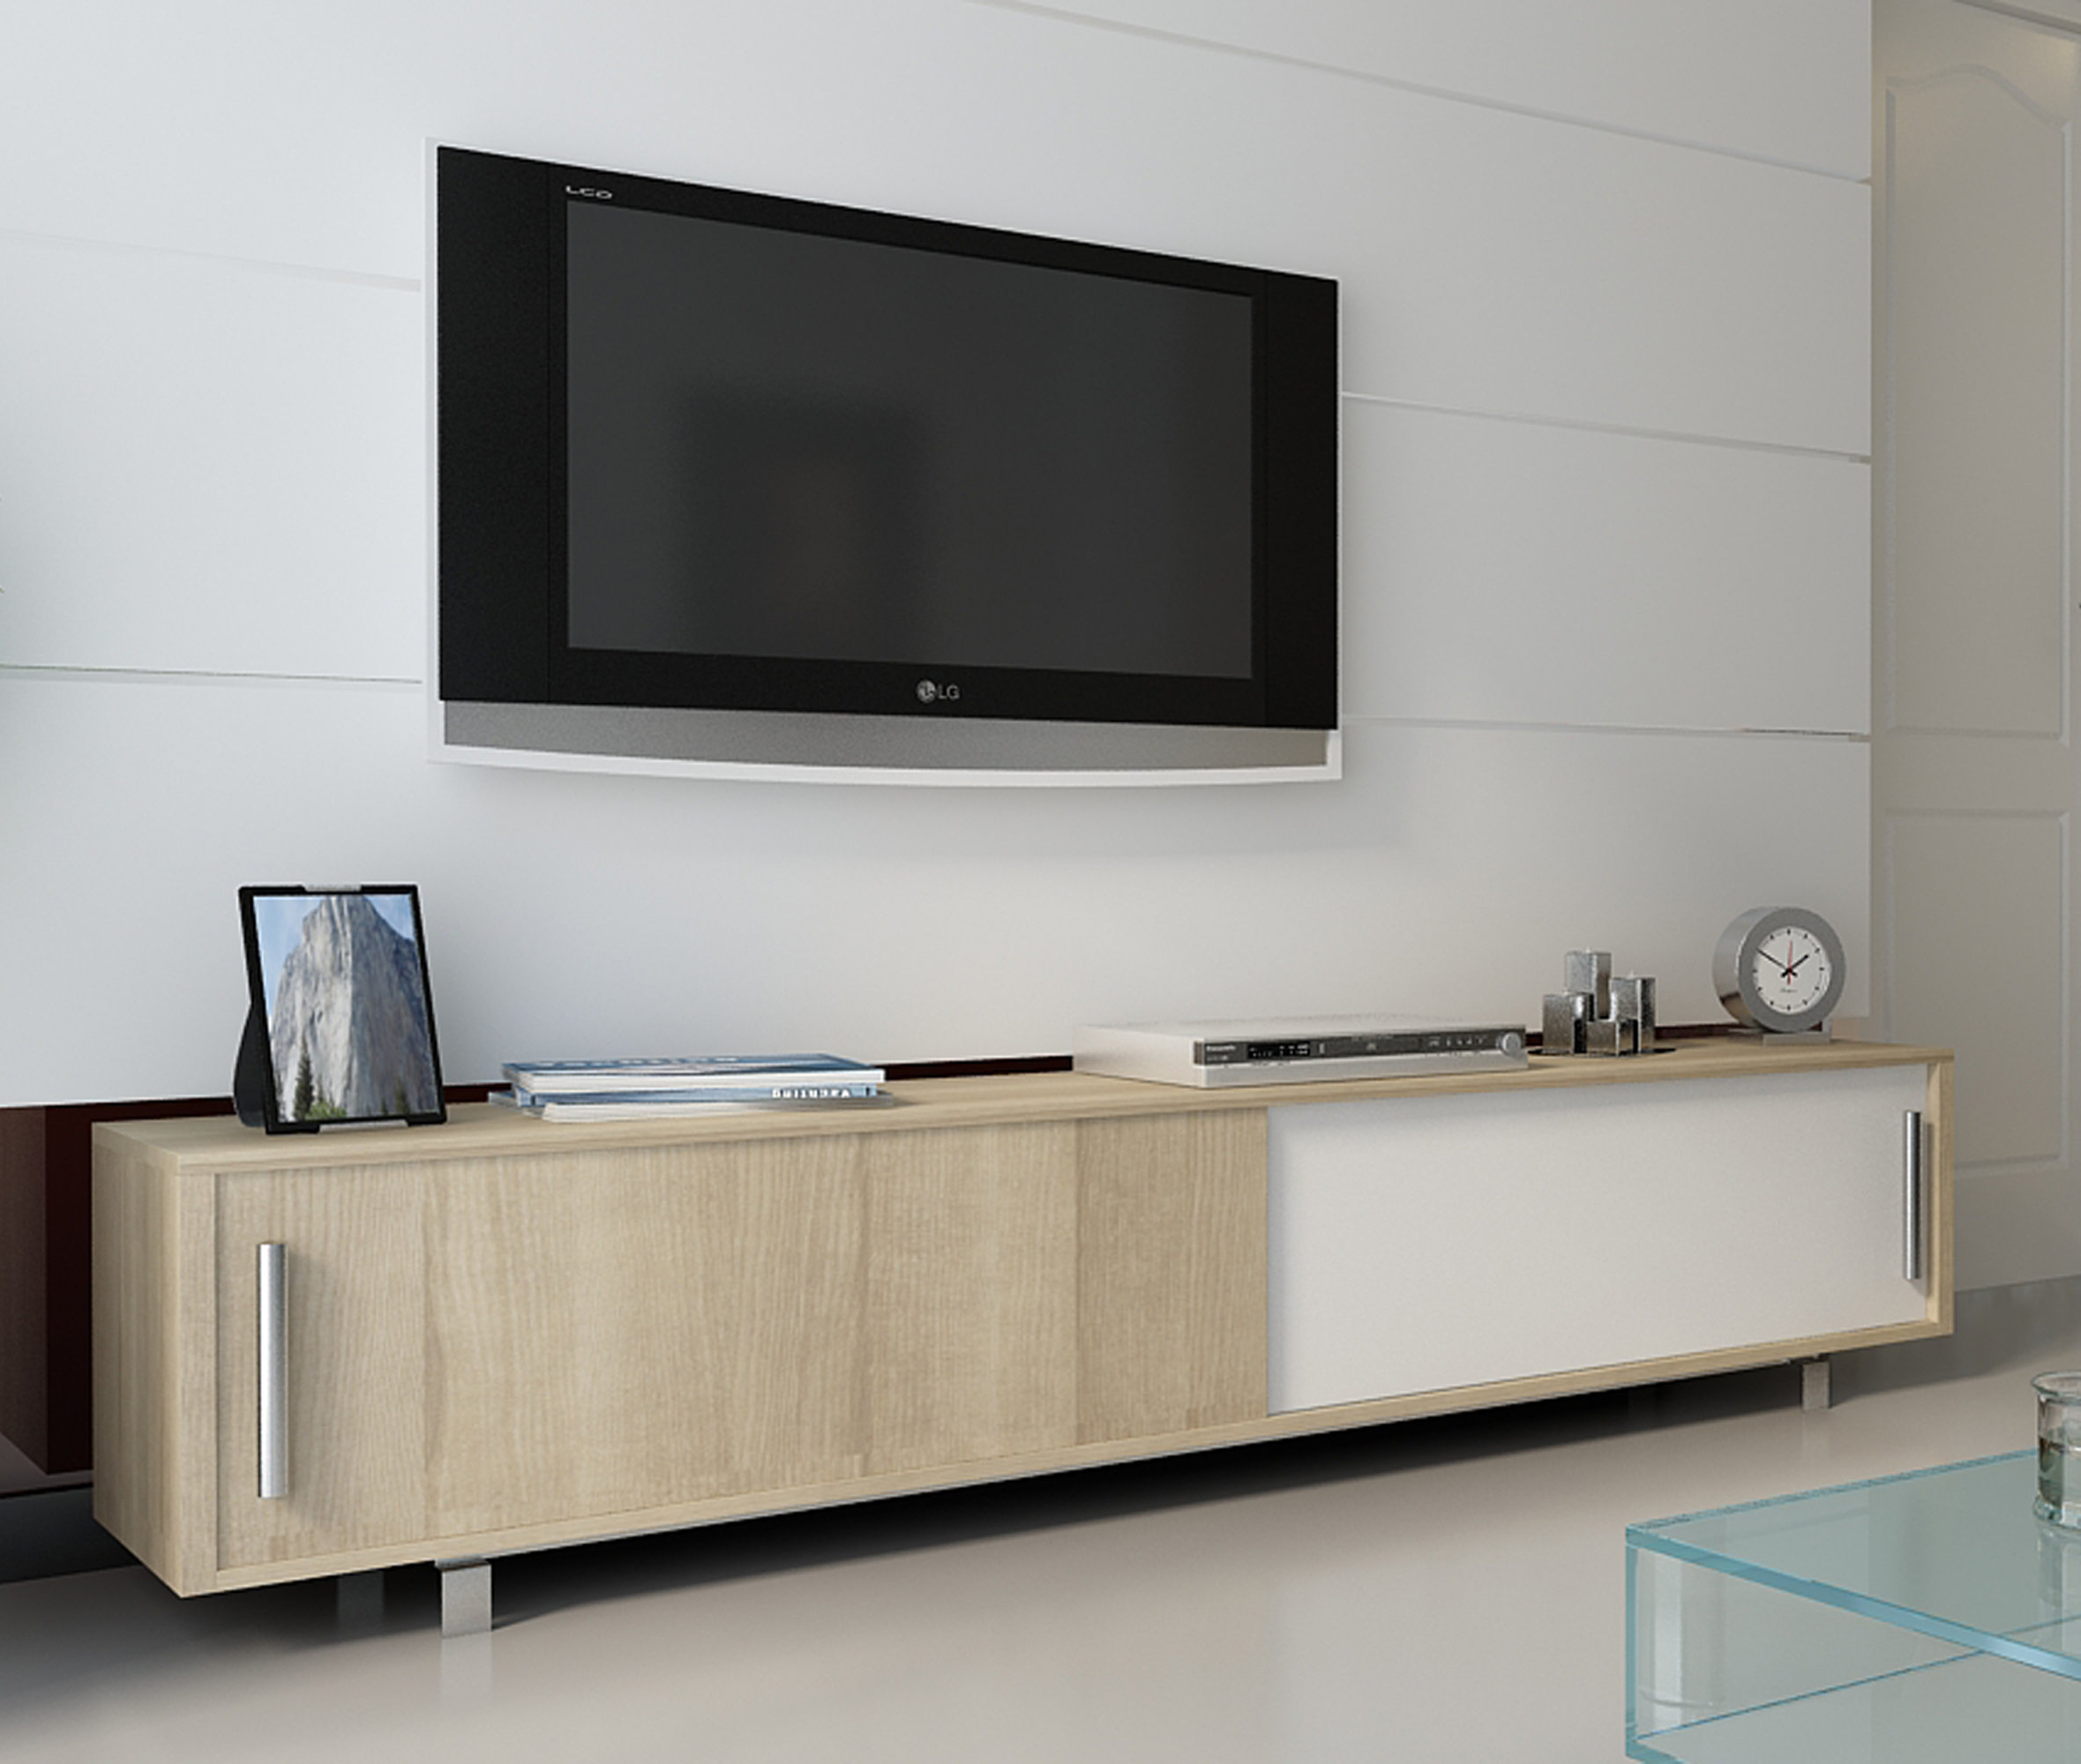 Most Popular Contemporary Corner Tv Stands Intended For Modern Tv Stands & Entertainment Centers (View 13 of 20)